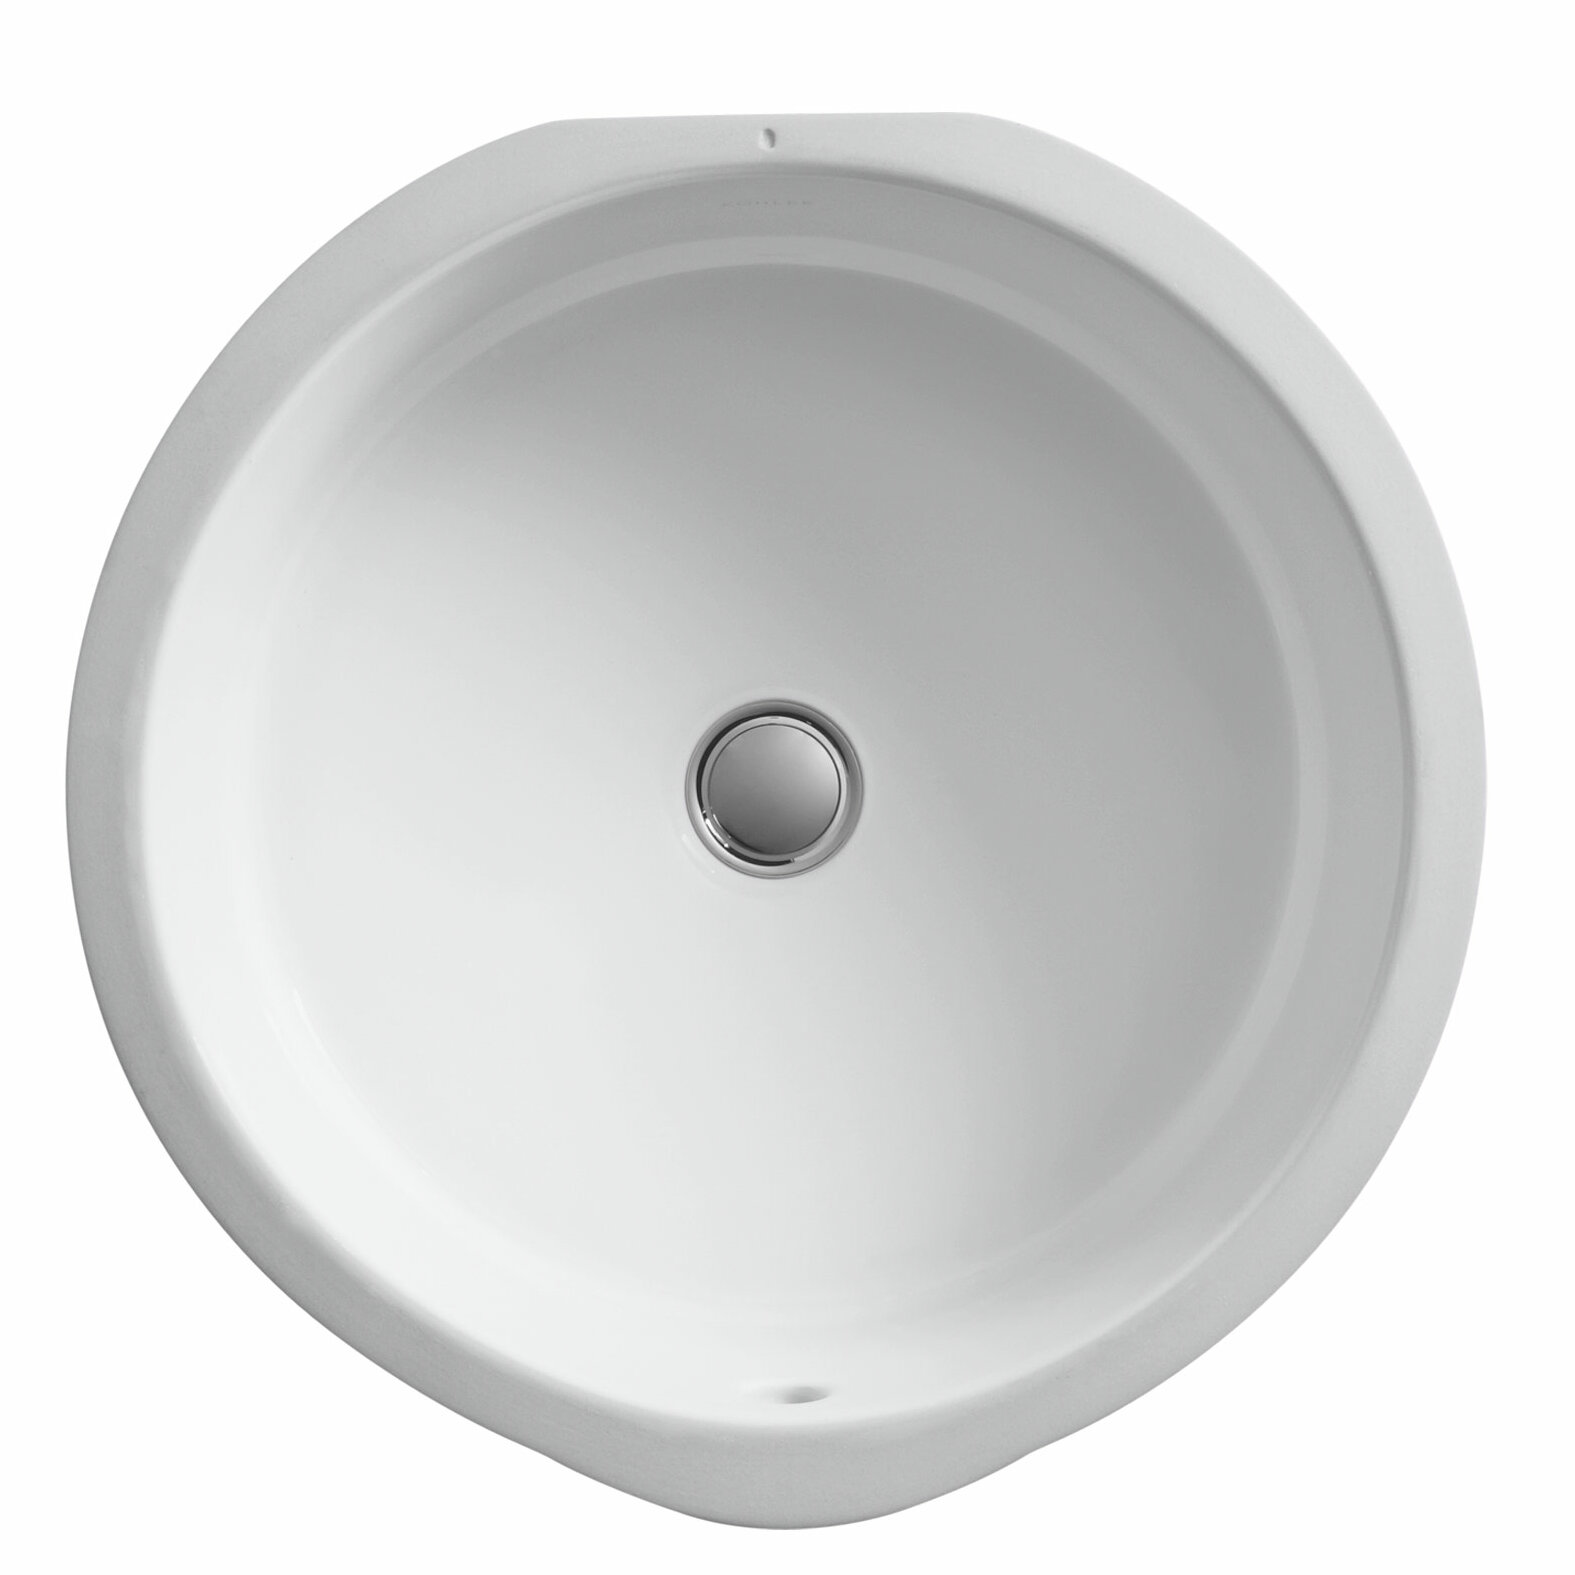 Kohler Verticyl Ceramic Round Undermount Bathroom Sink With Overflow Reviews Wayfair